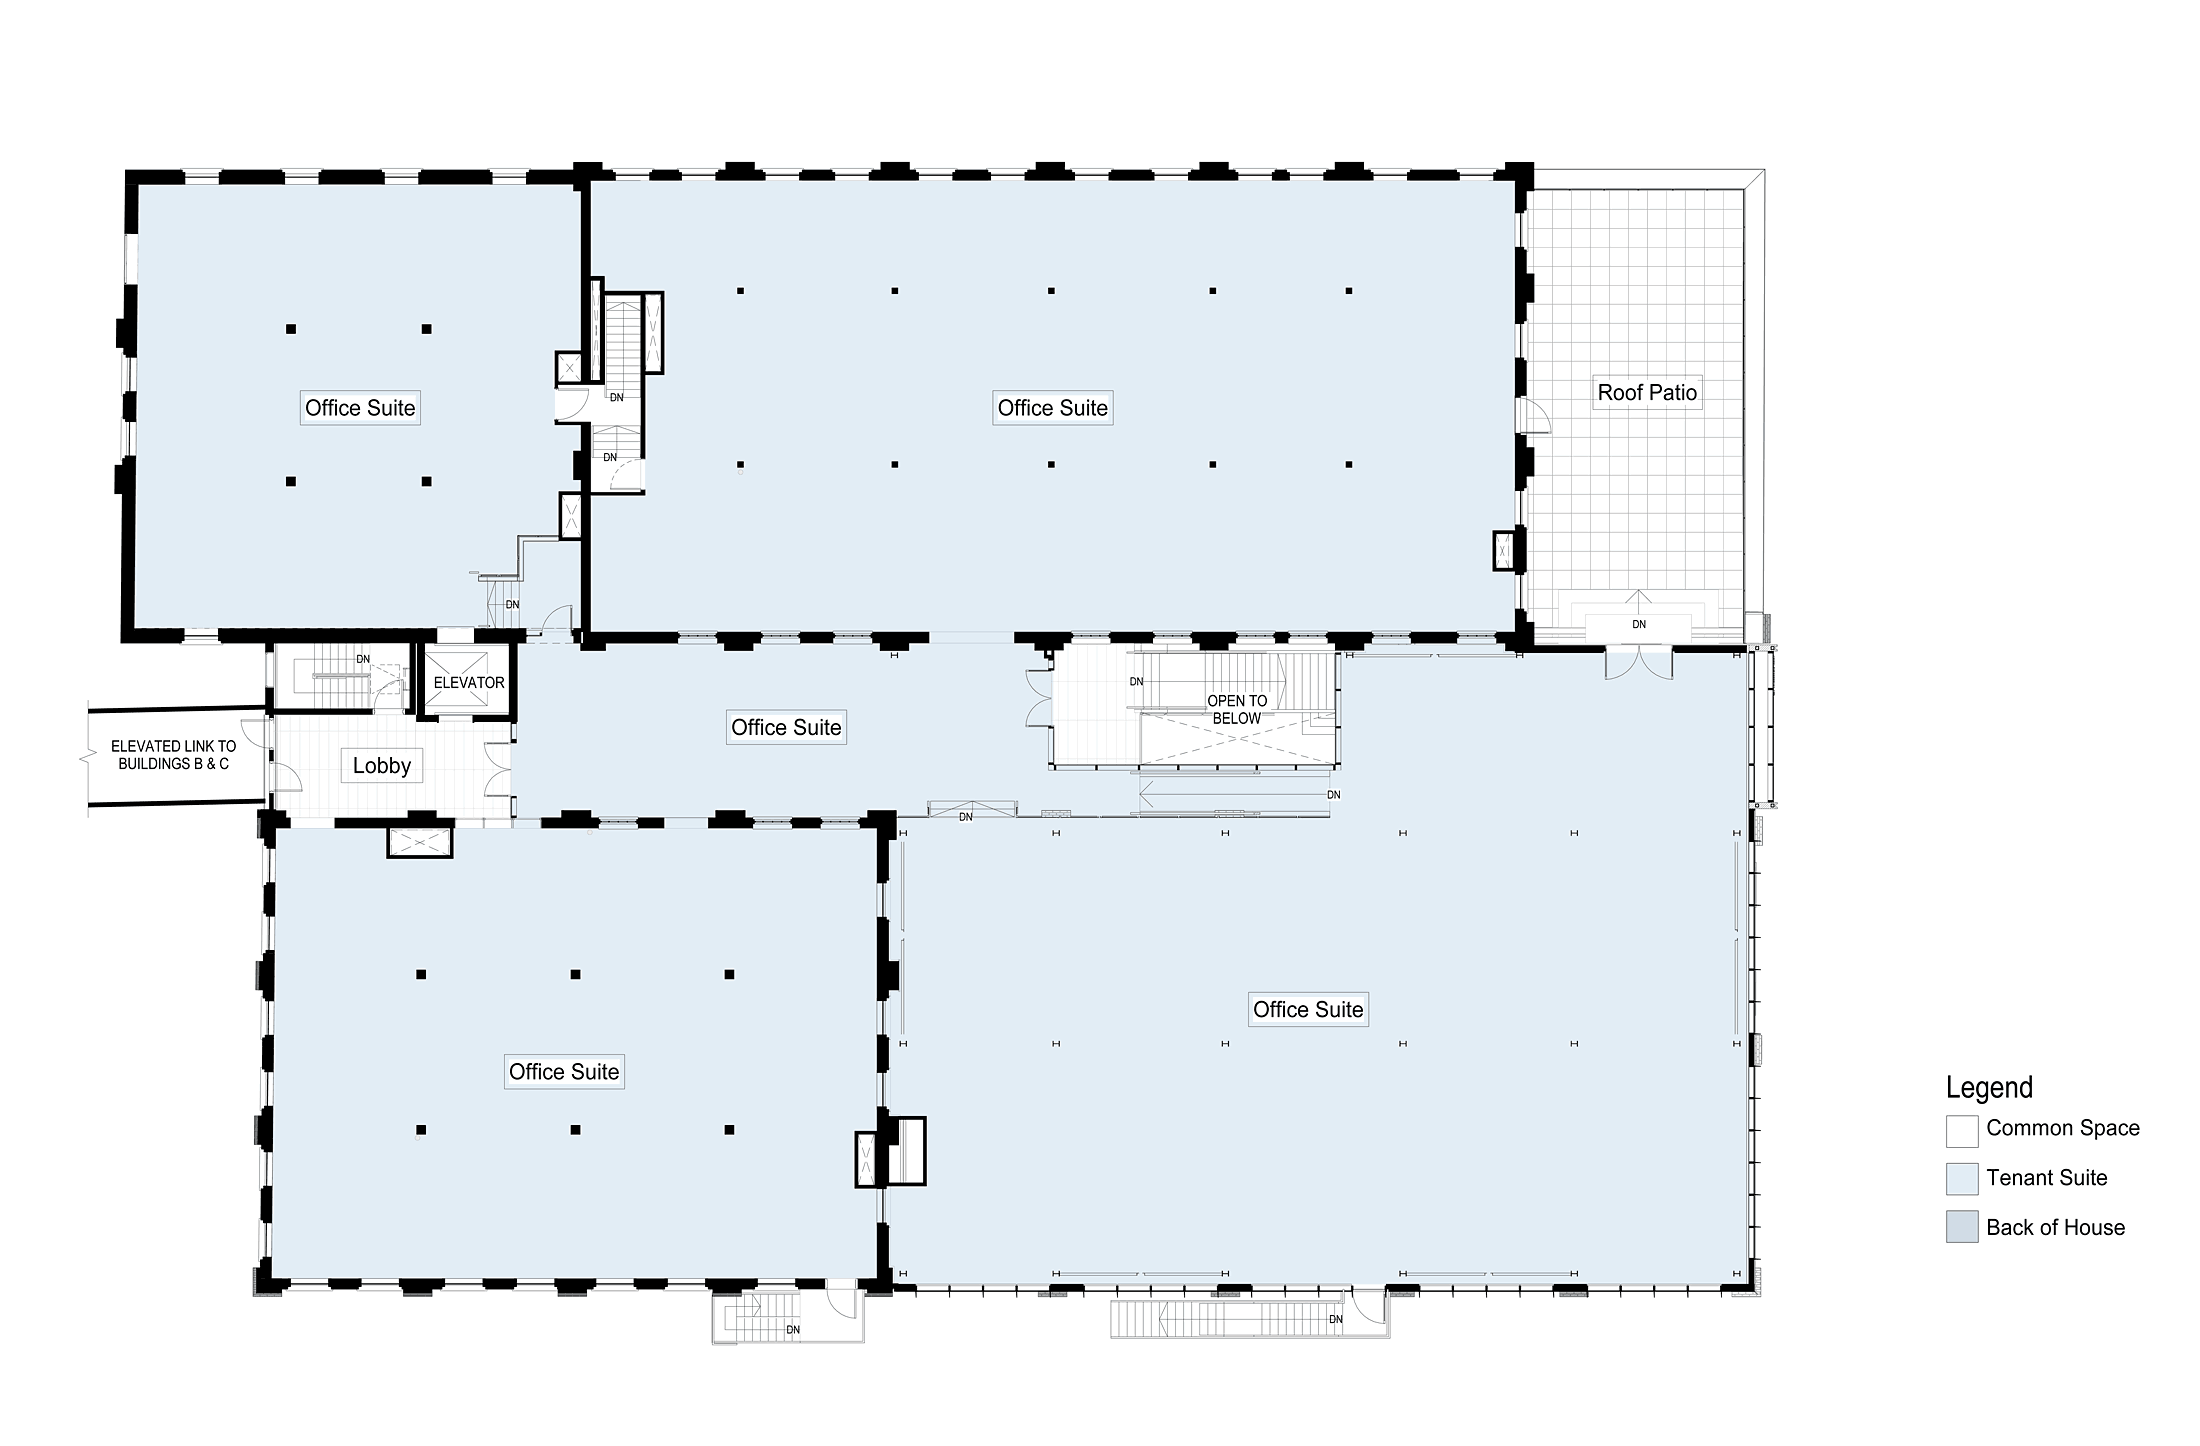 Building A Ground Floor Floorplan